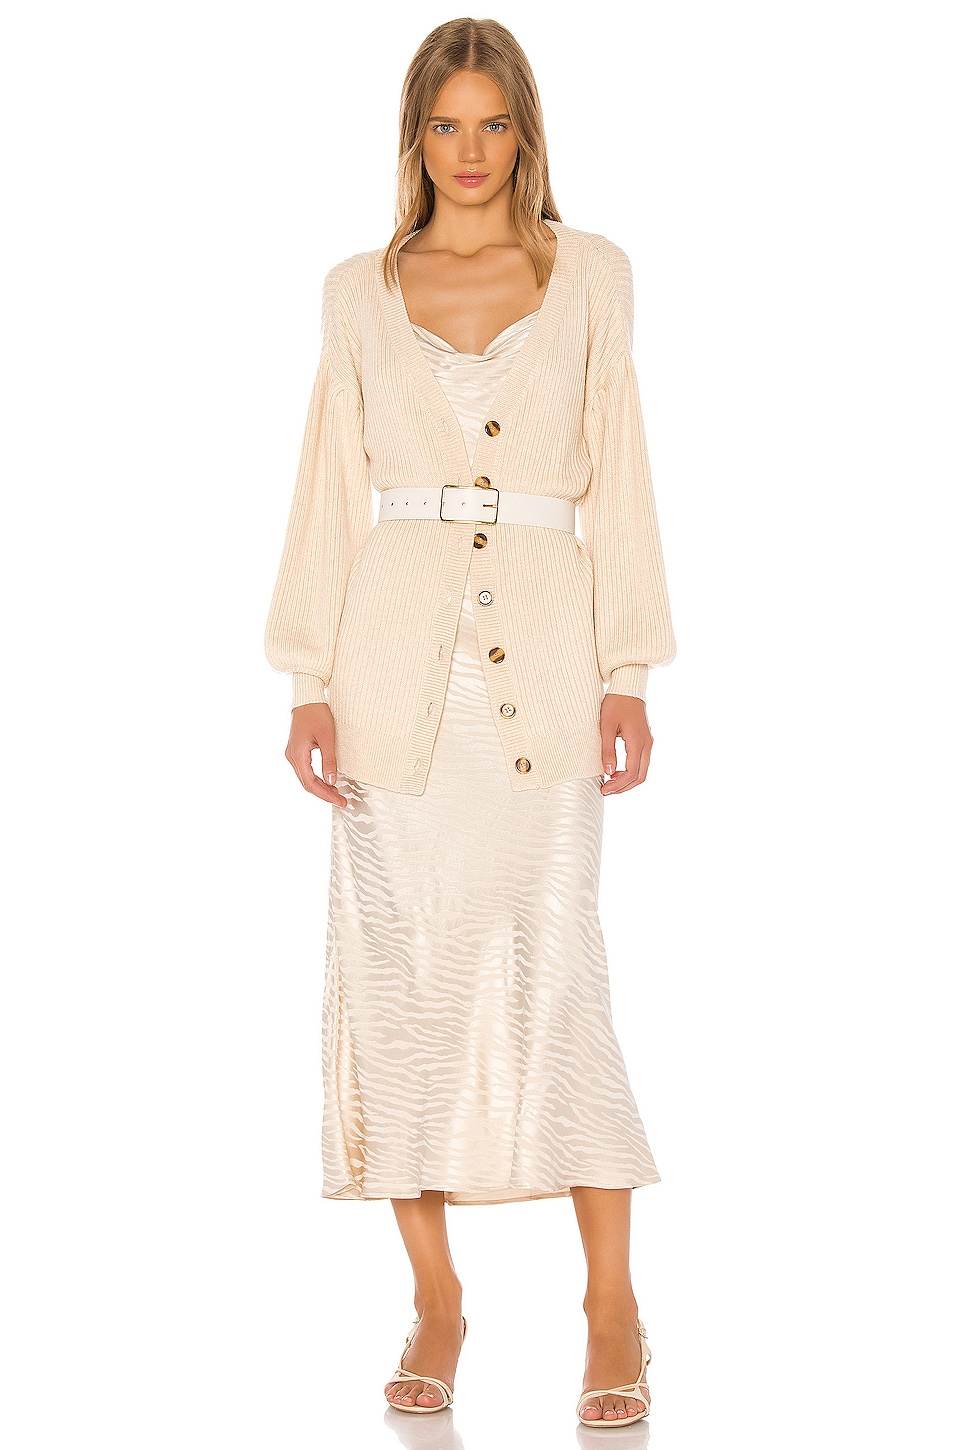 Song of Style Vienna Cardigan in Ivory